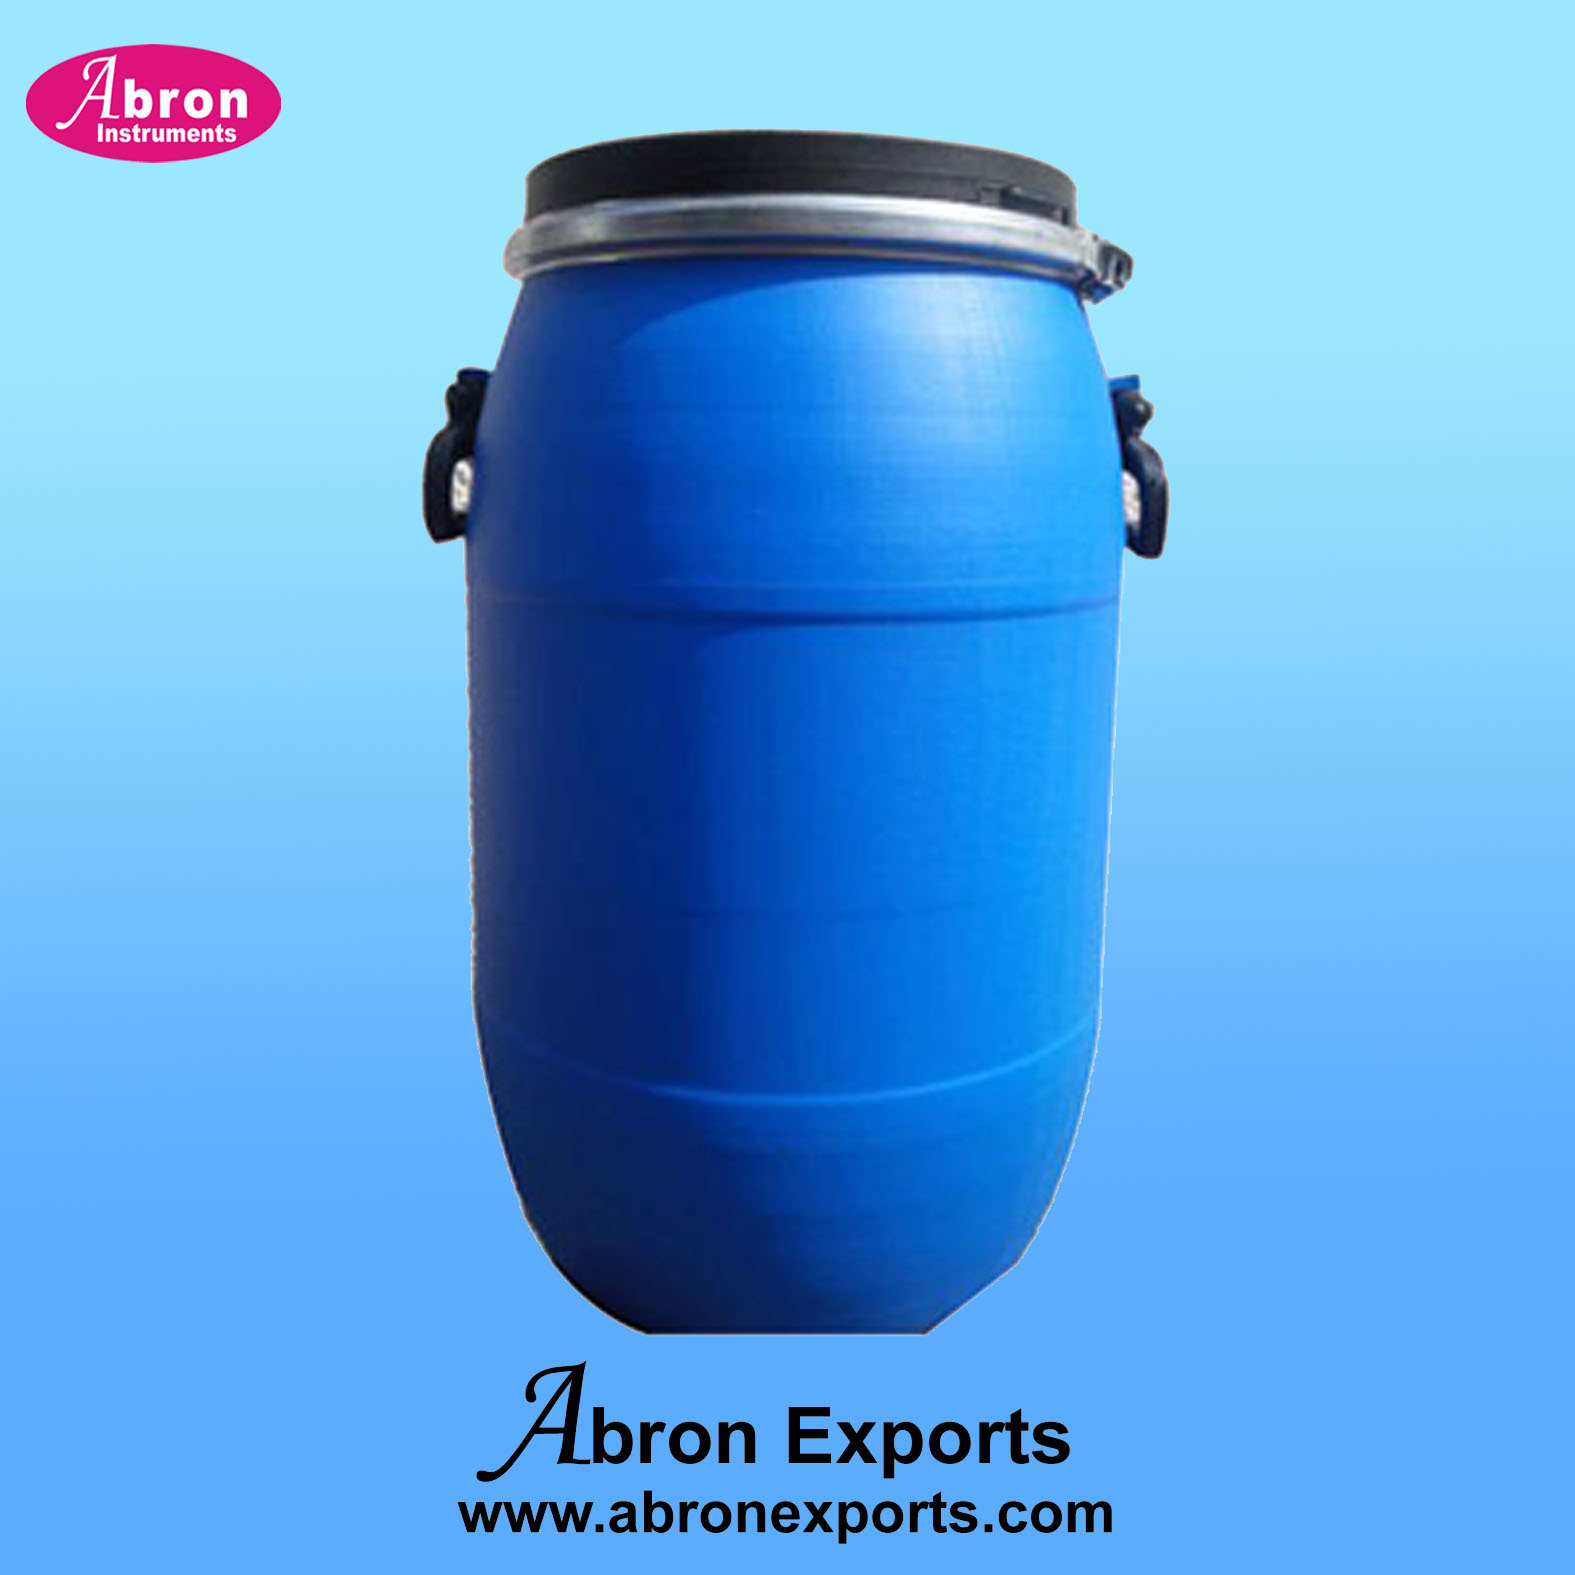 Honey Containers For Storage Collecting 50kg Plastic with Carrying Handle Abron AT-9515-50